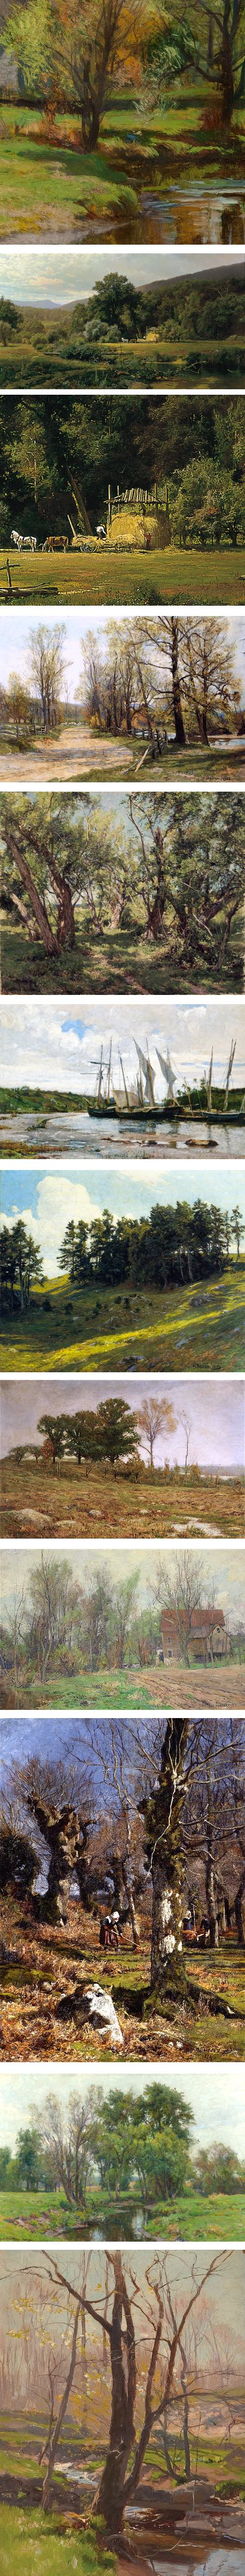 Hugh Bolton Jones lanscape paintings